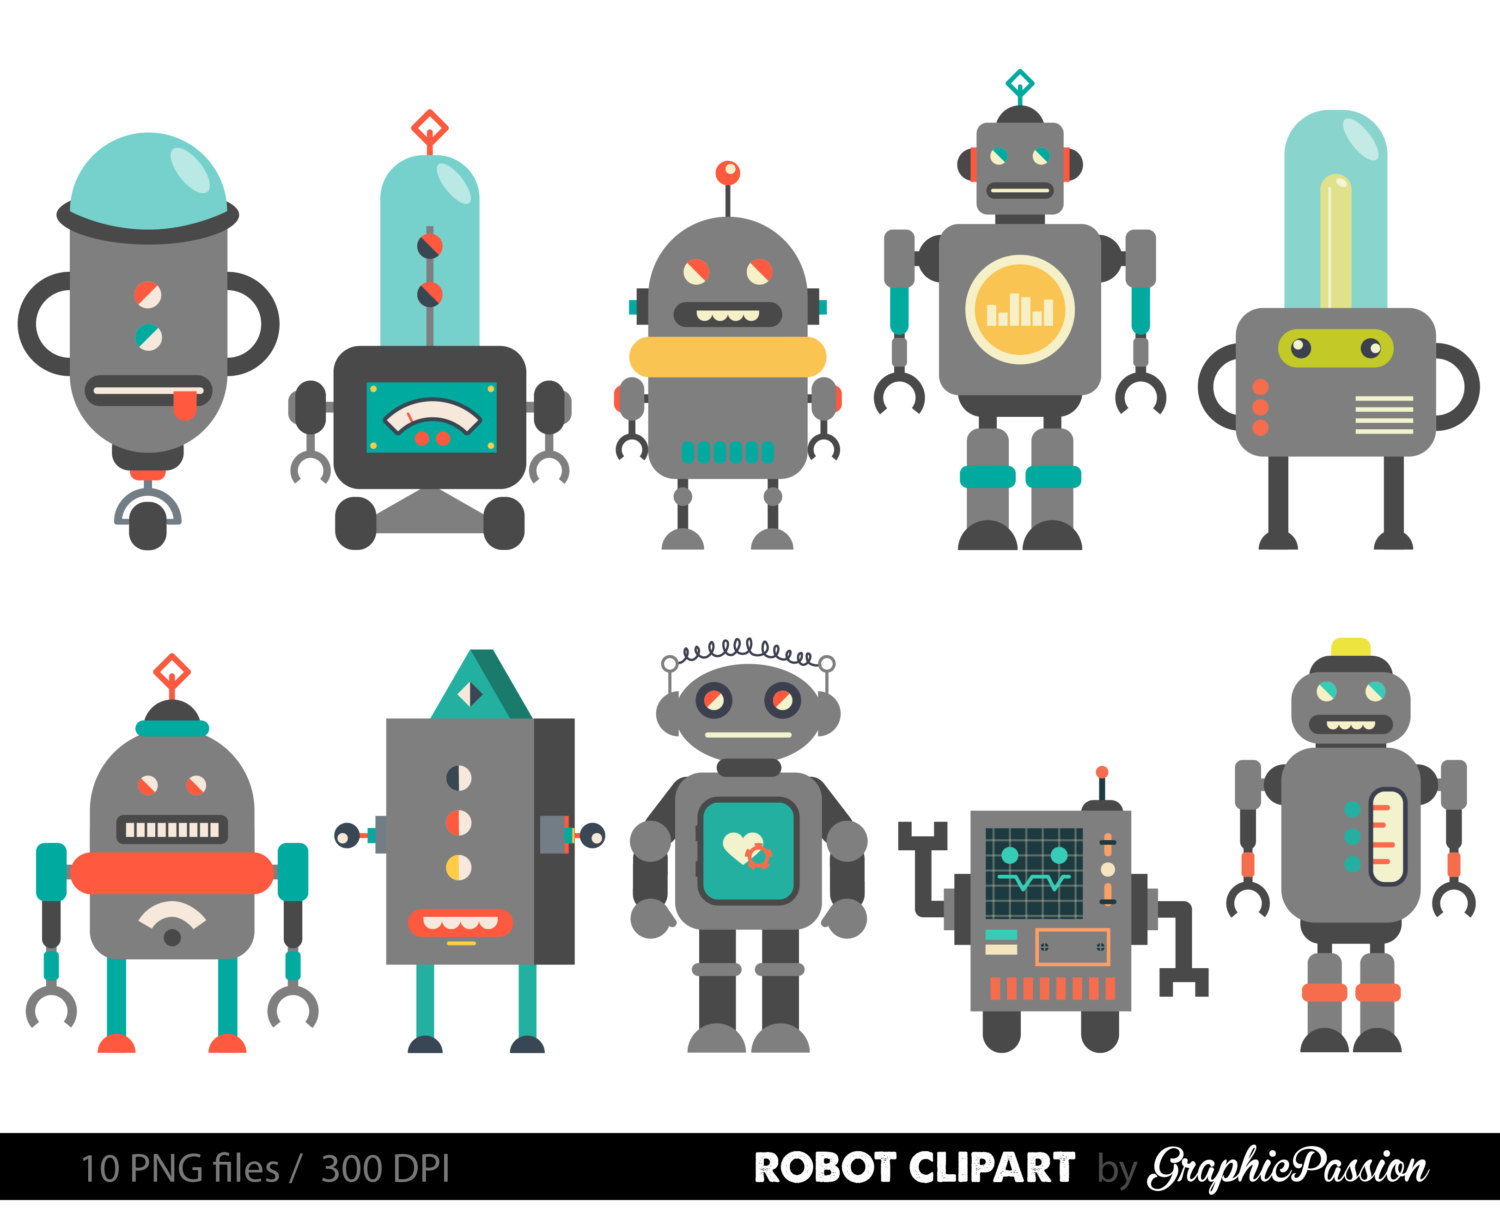 Retro Robot Clipart Robot Clipart Birthday by GraphicPassion.